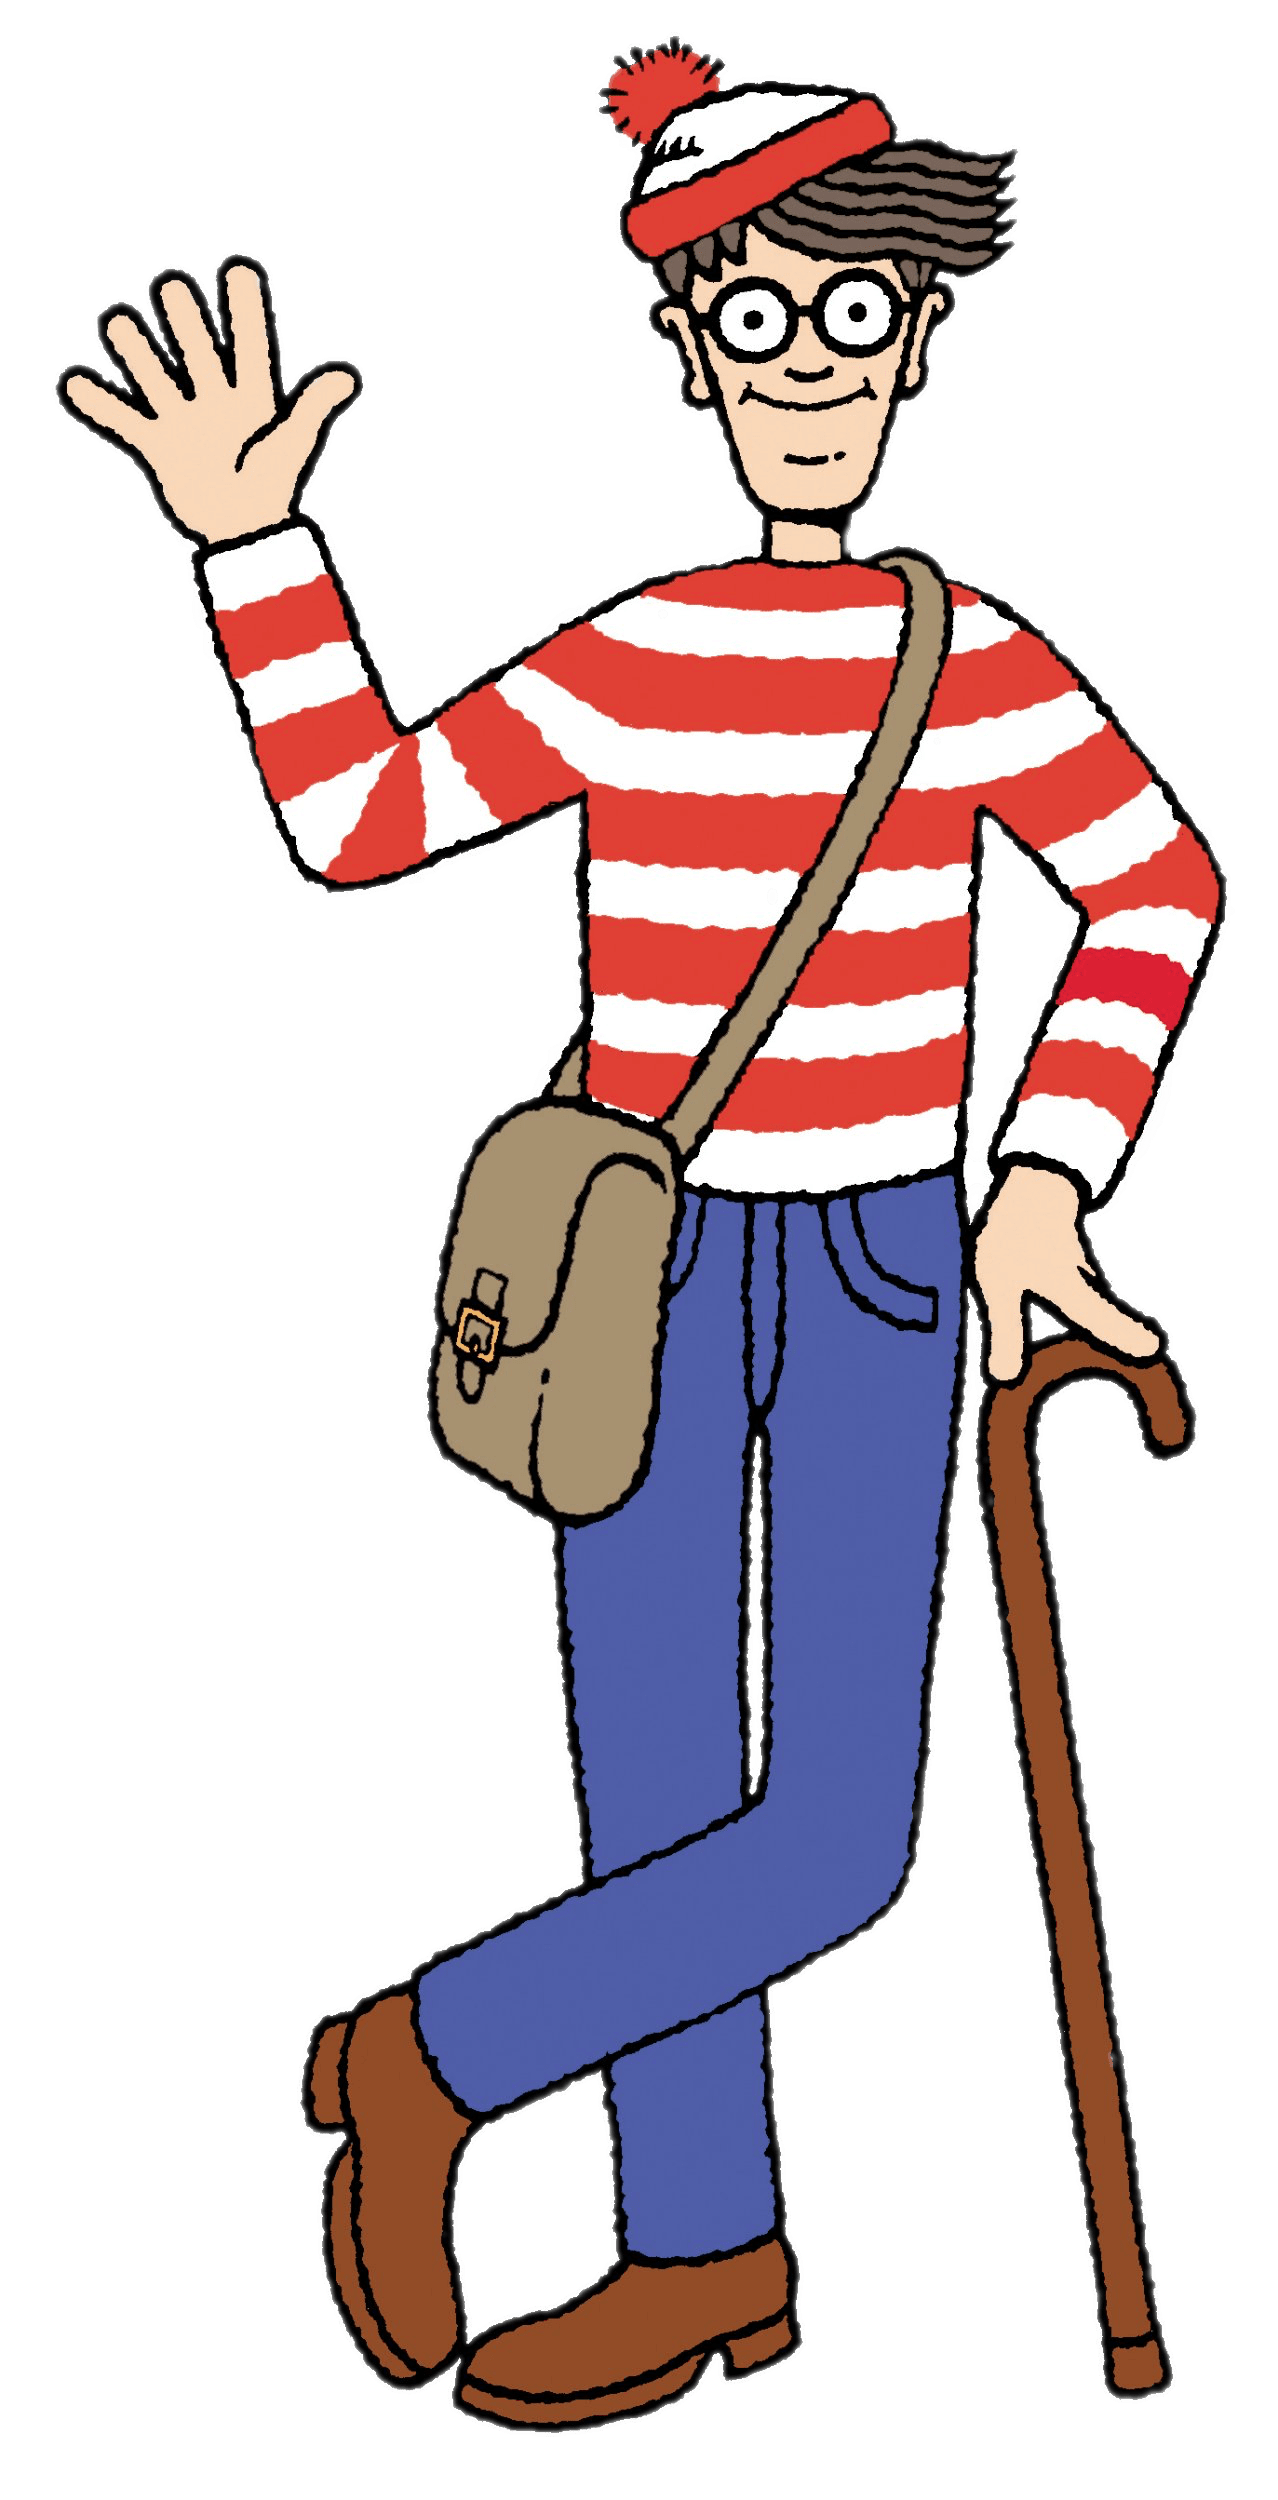 Waldo transparent png. Wally images stickpng full